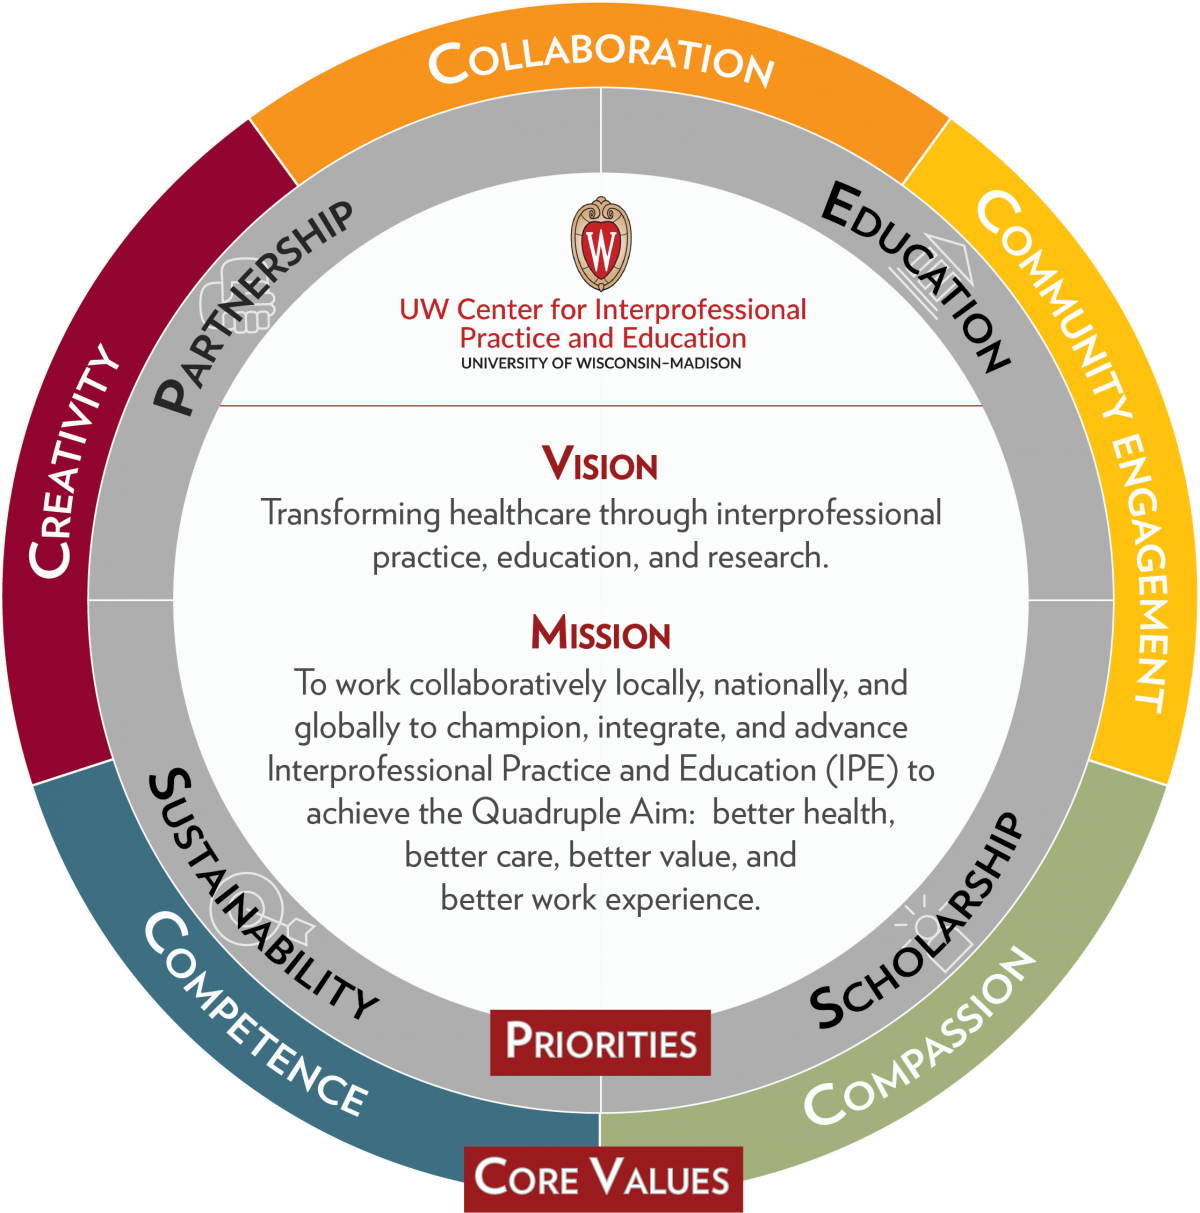 UW CIPE Strategic Direction Graphic